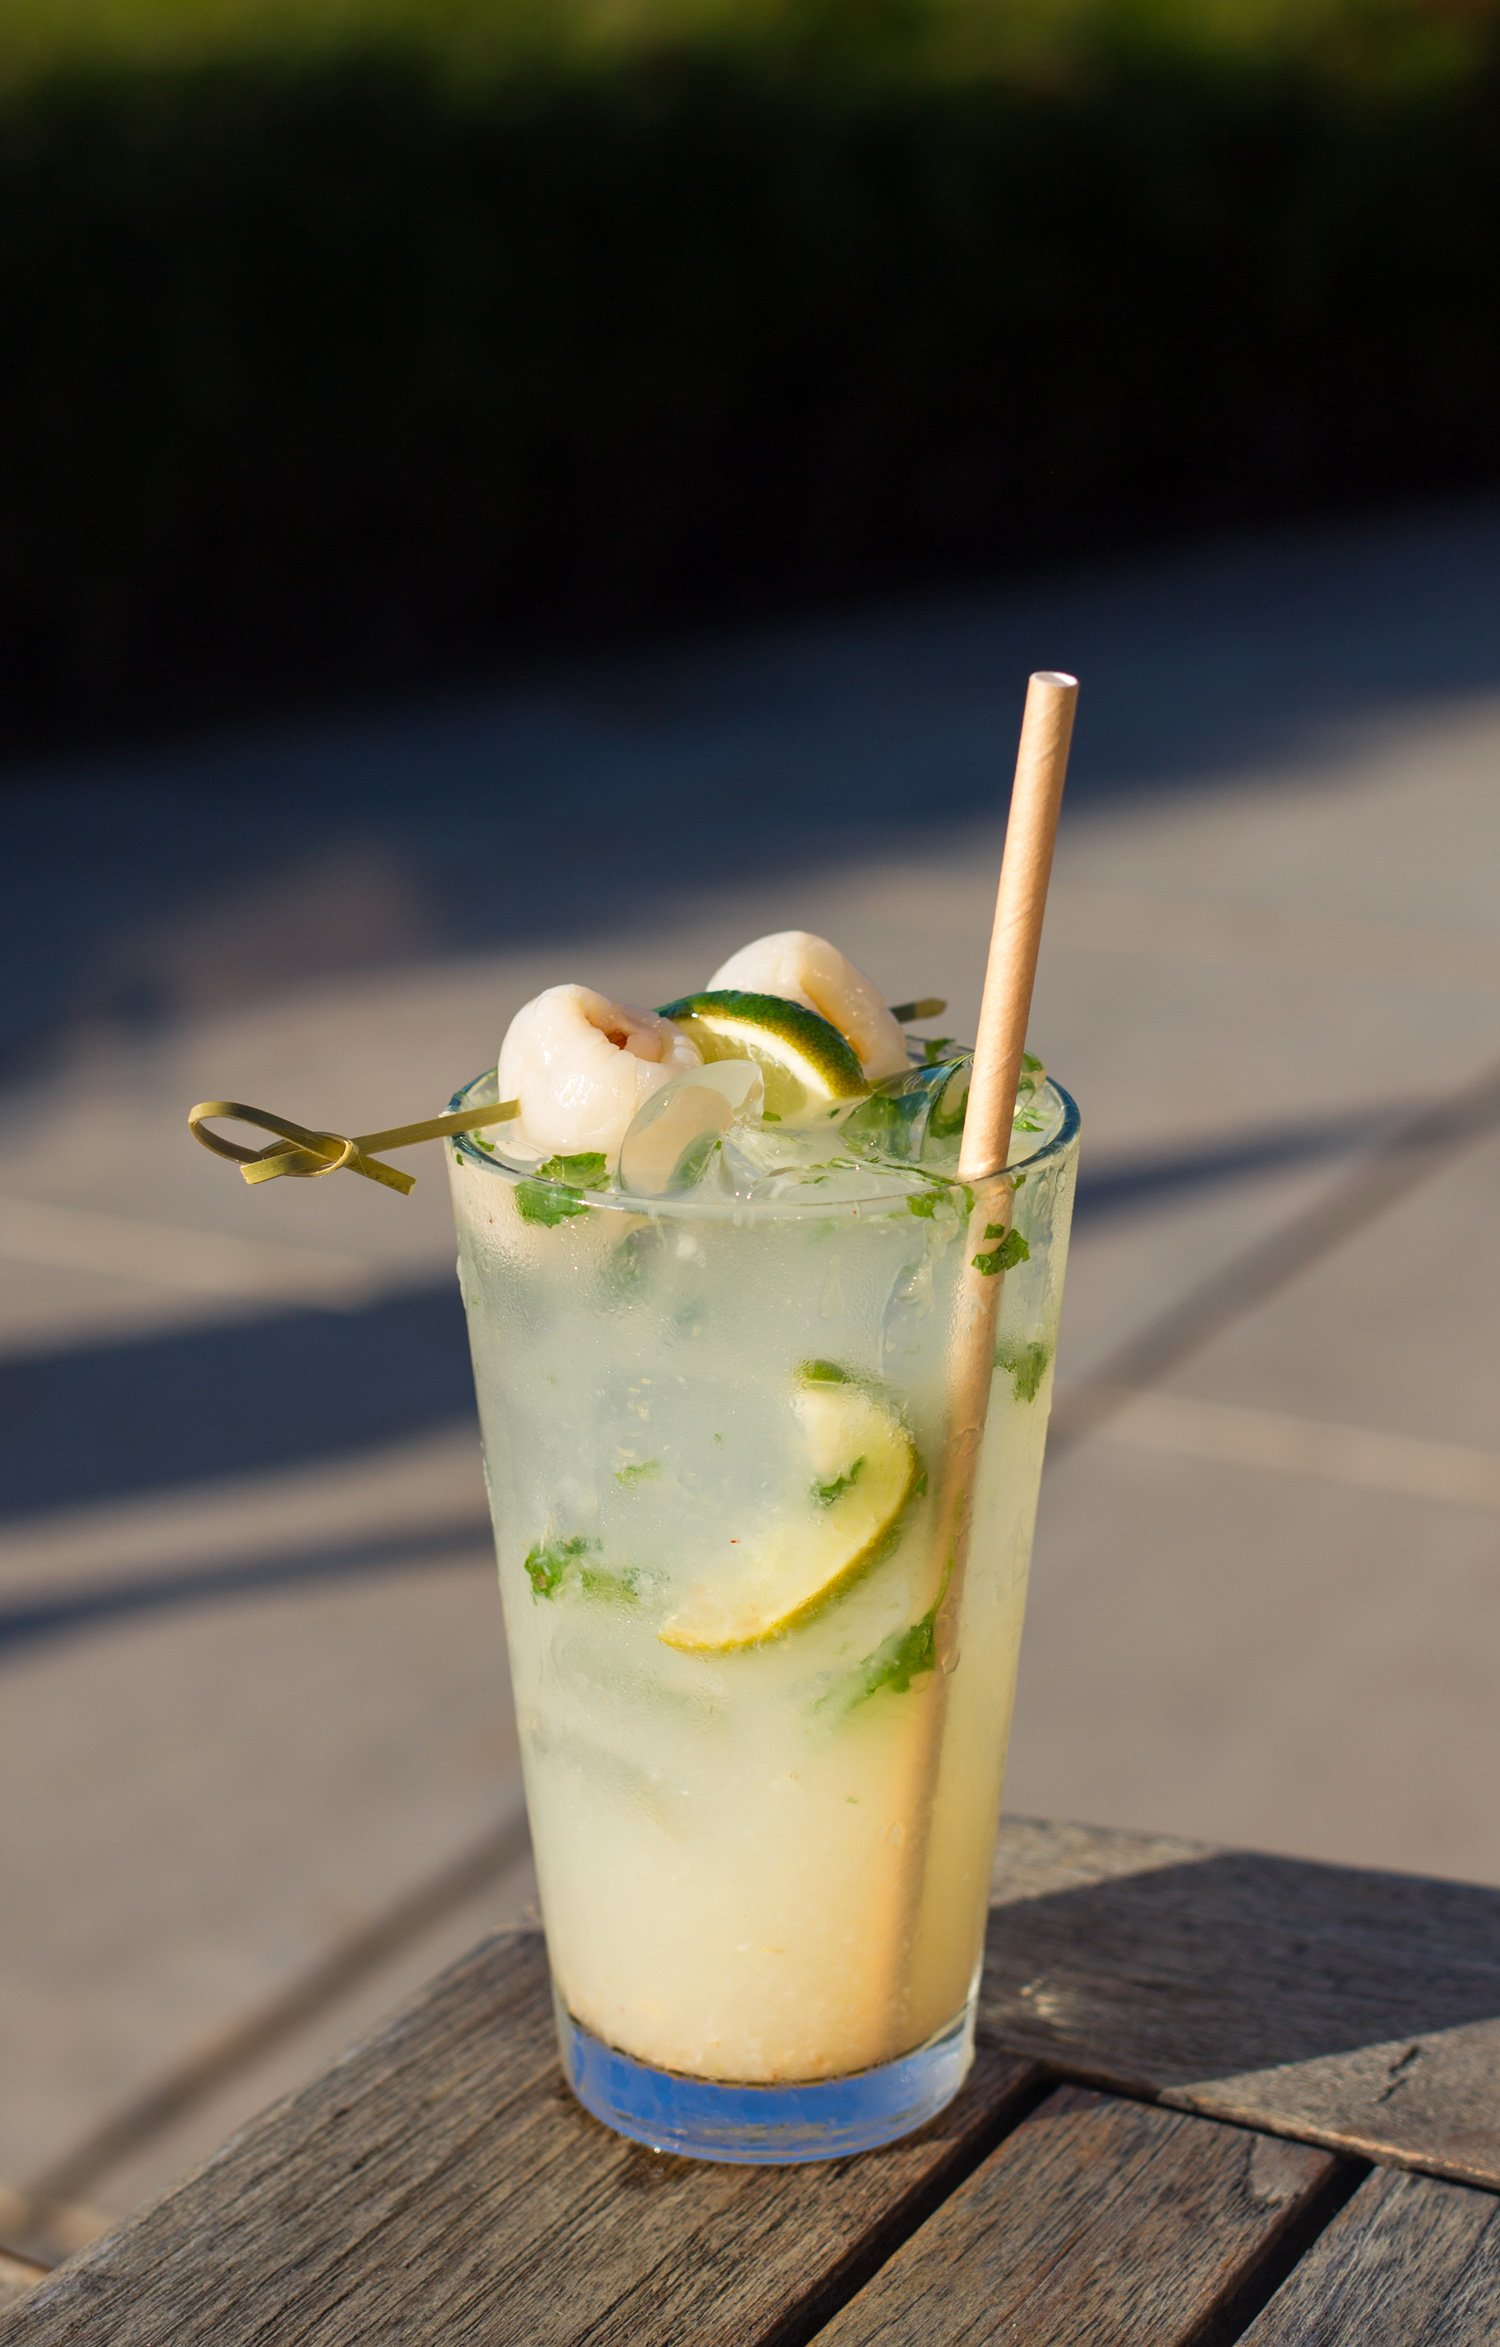 The Lychee Cooler Cocktail